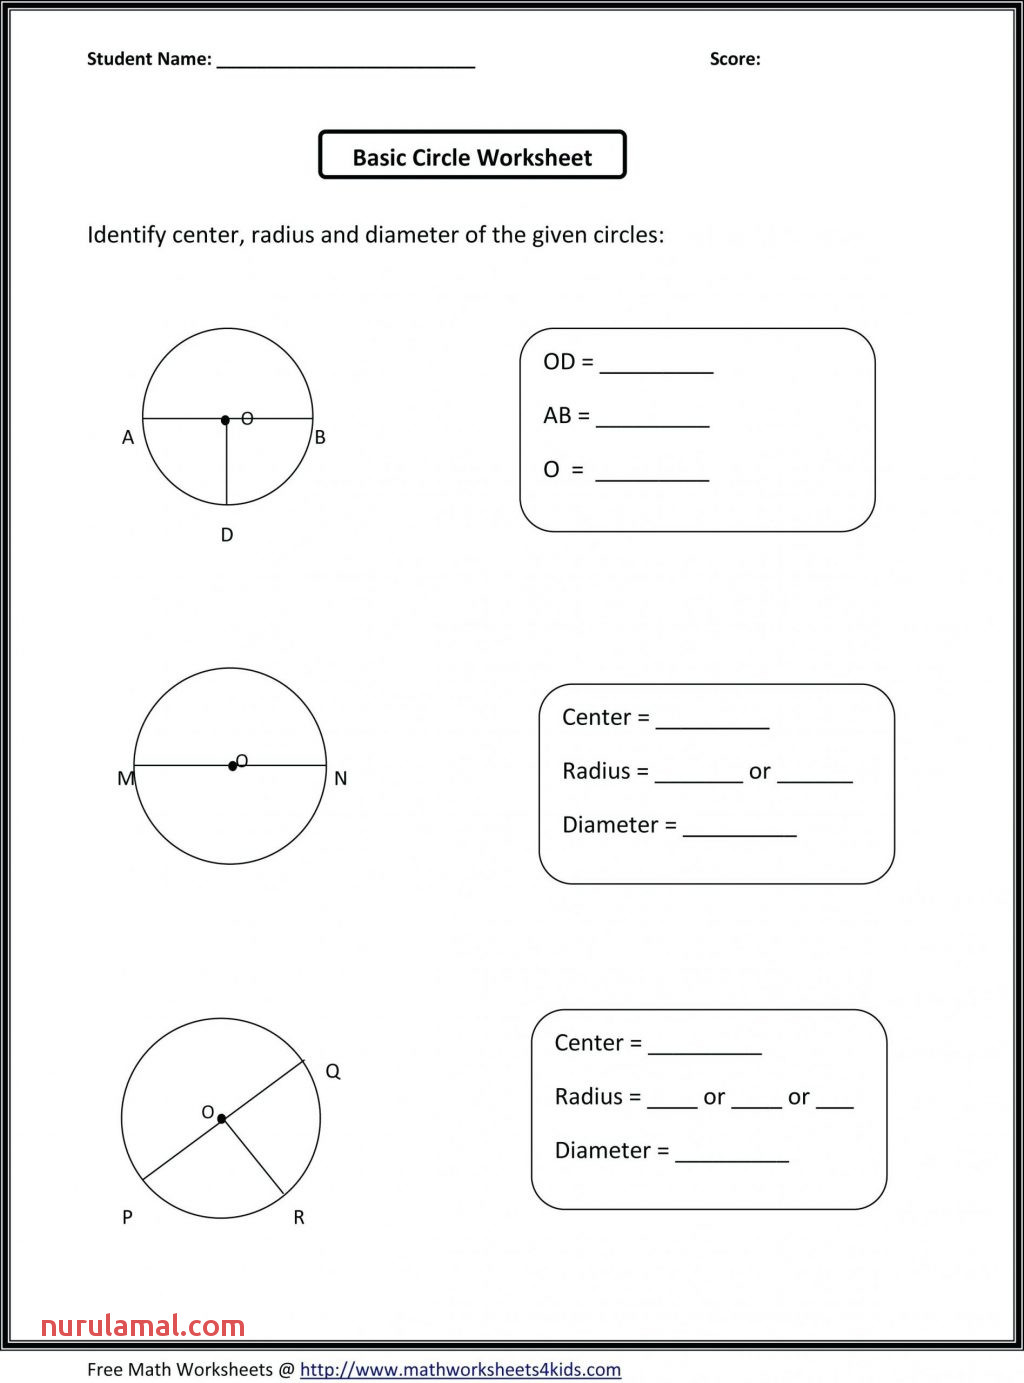 Coloring Pages Math Coloring Worksheets 4th Grade Veggie